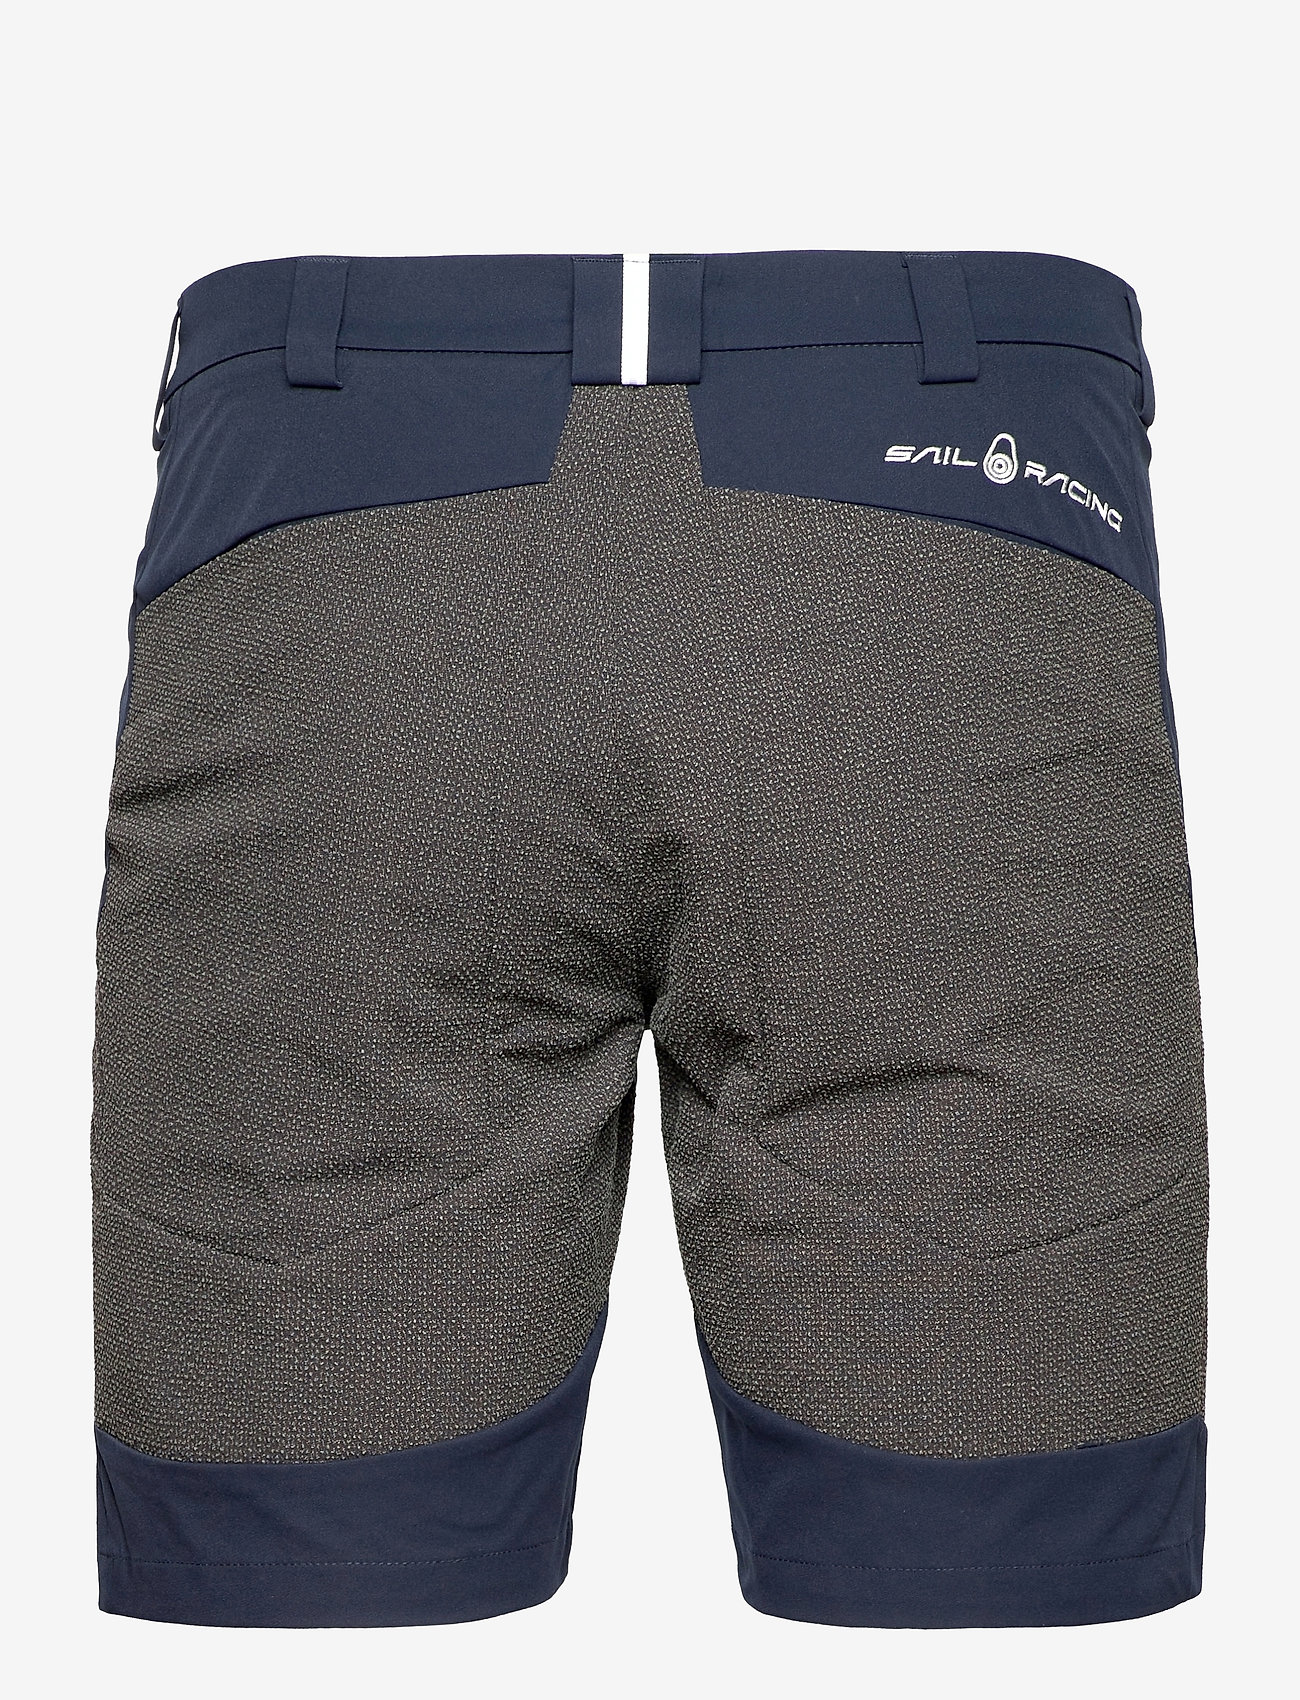 Sail Racing - BOWMAN TECHNICAL SAILING SHORTS - training korte broek - navy - 1